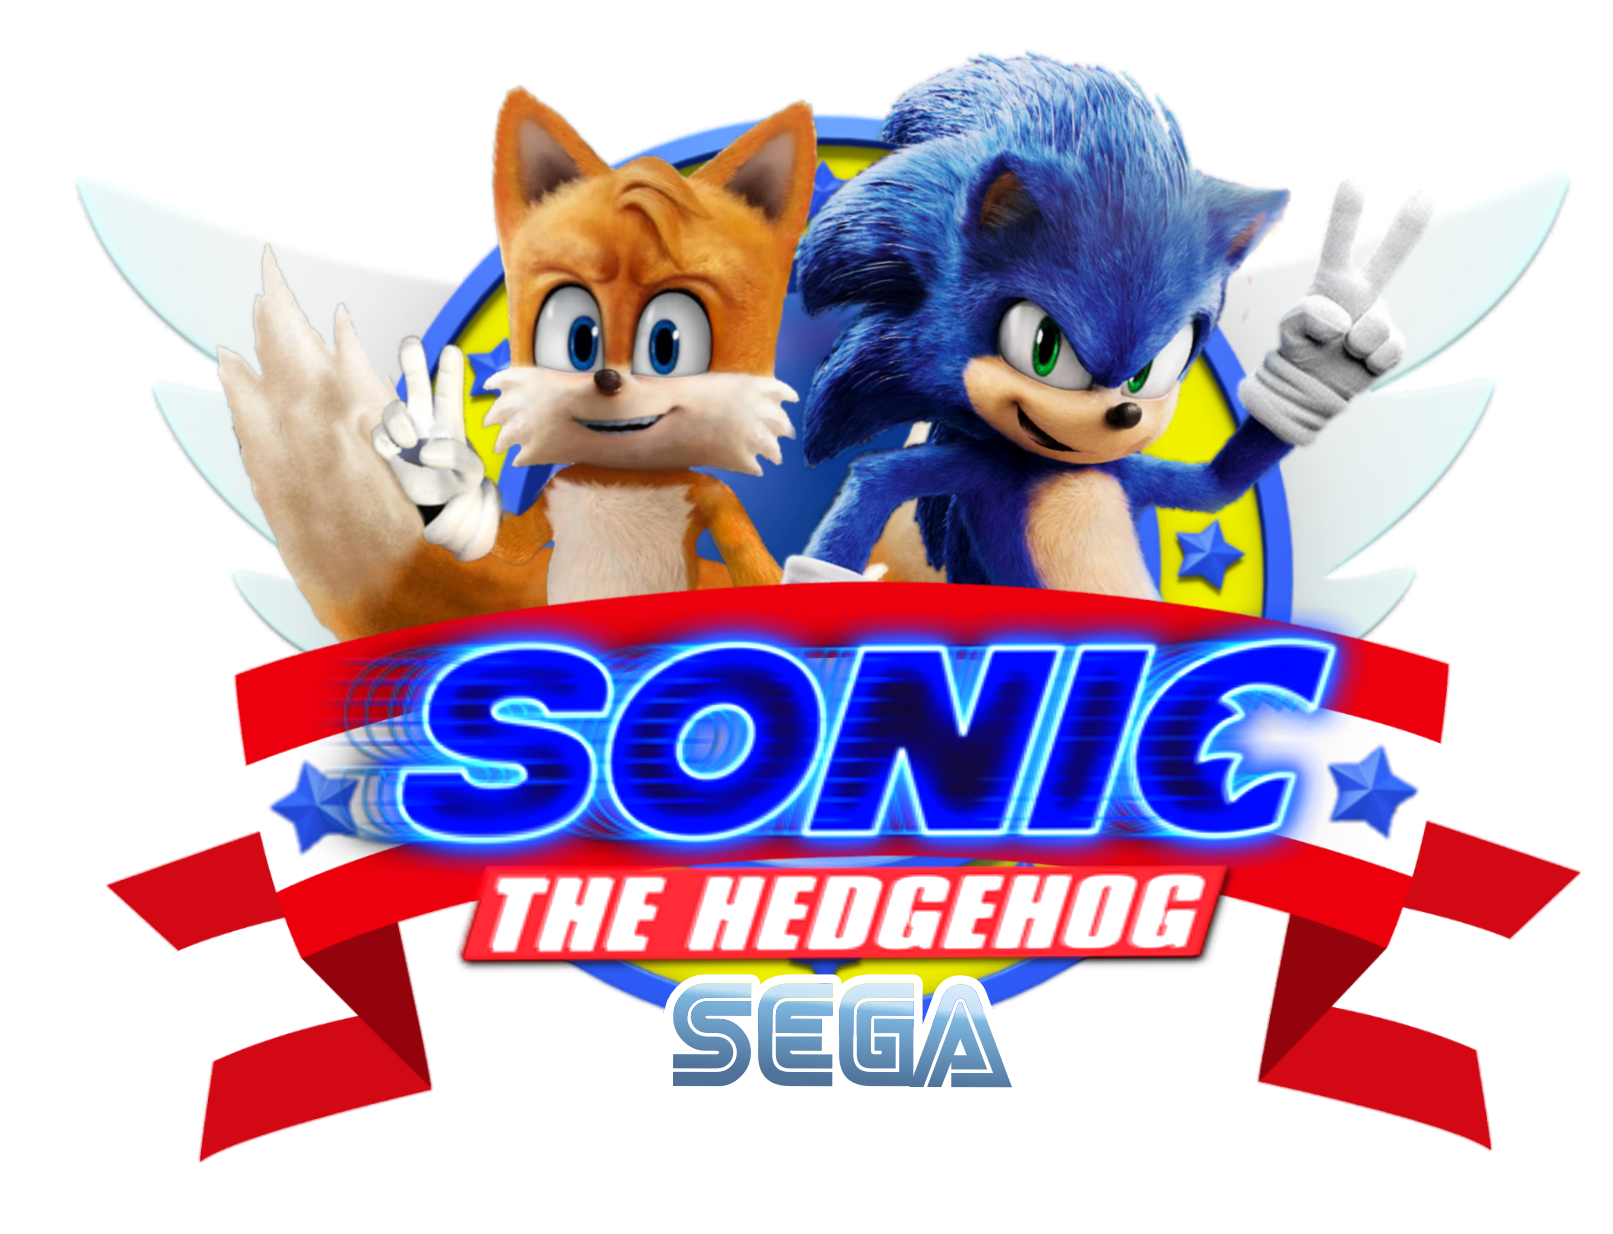 Sonic Title Movie 2 Hedgehog Movie Sonic The Movie Sonic Fan Characters